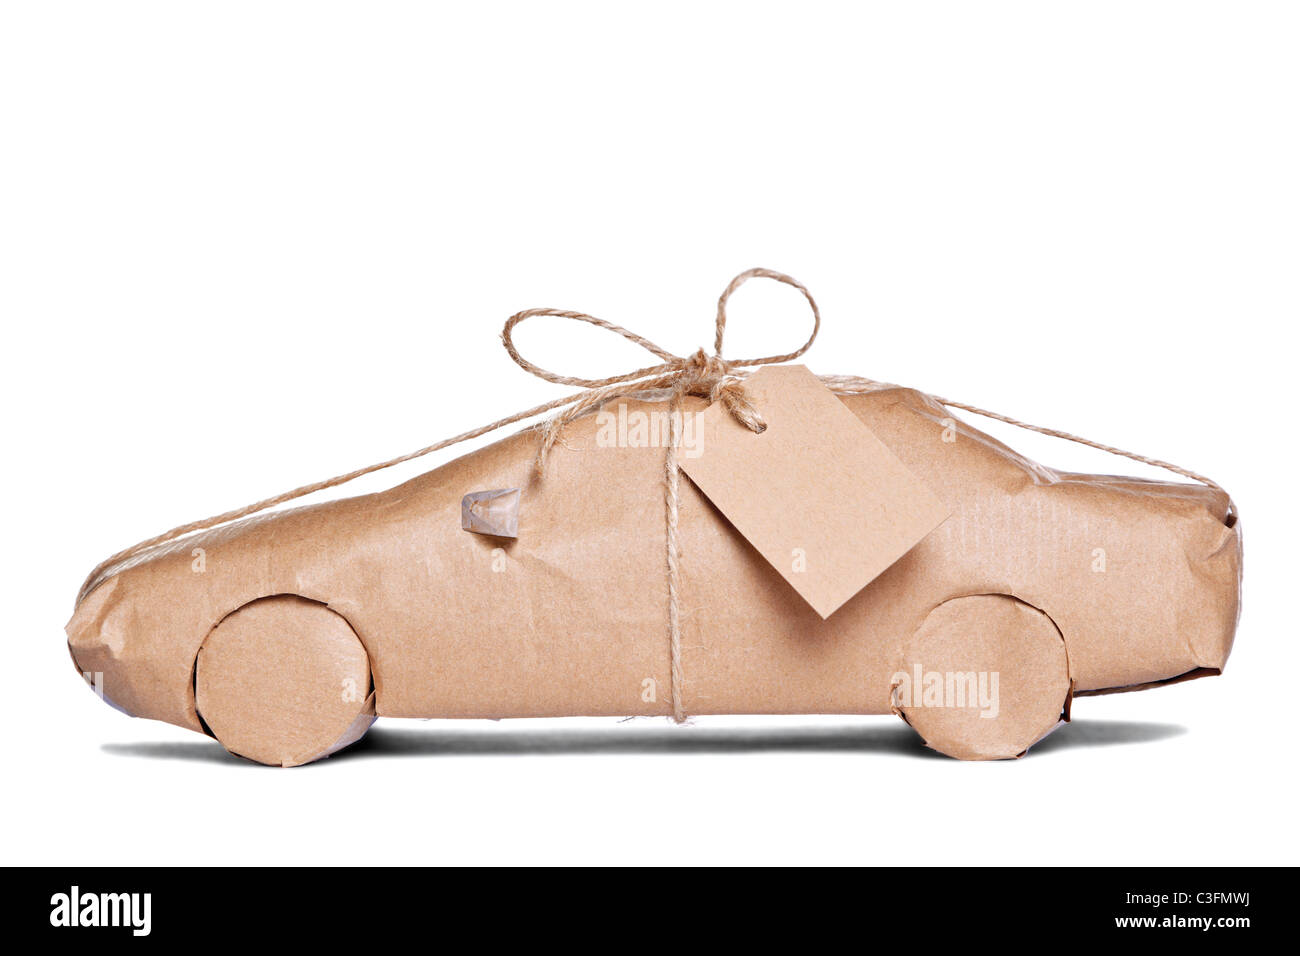 Photo of a car wrapped in brown recycled paper with label, cut out on a white background. - Stock Image